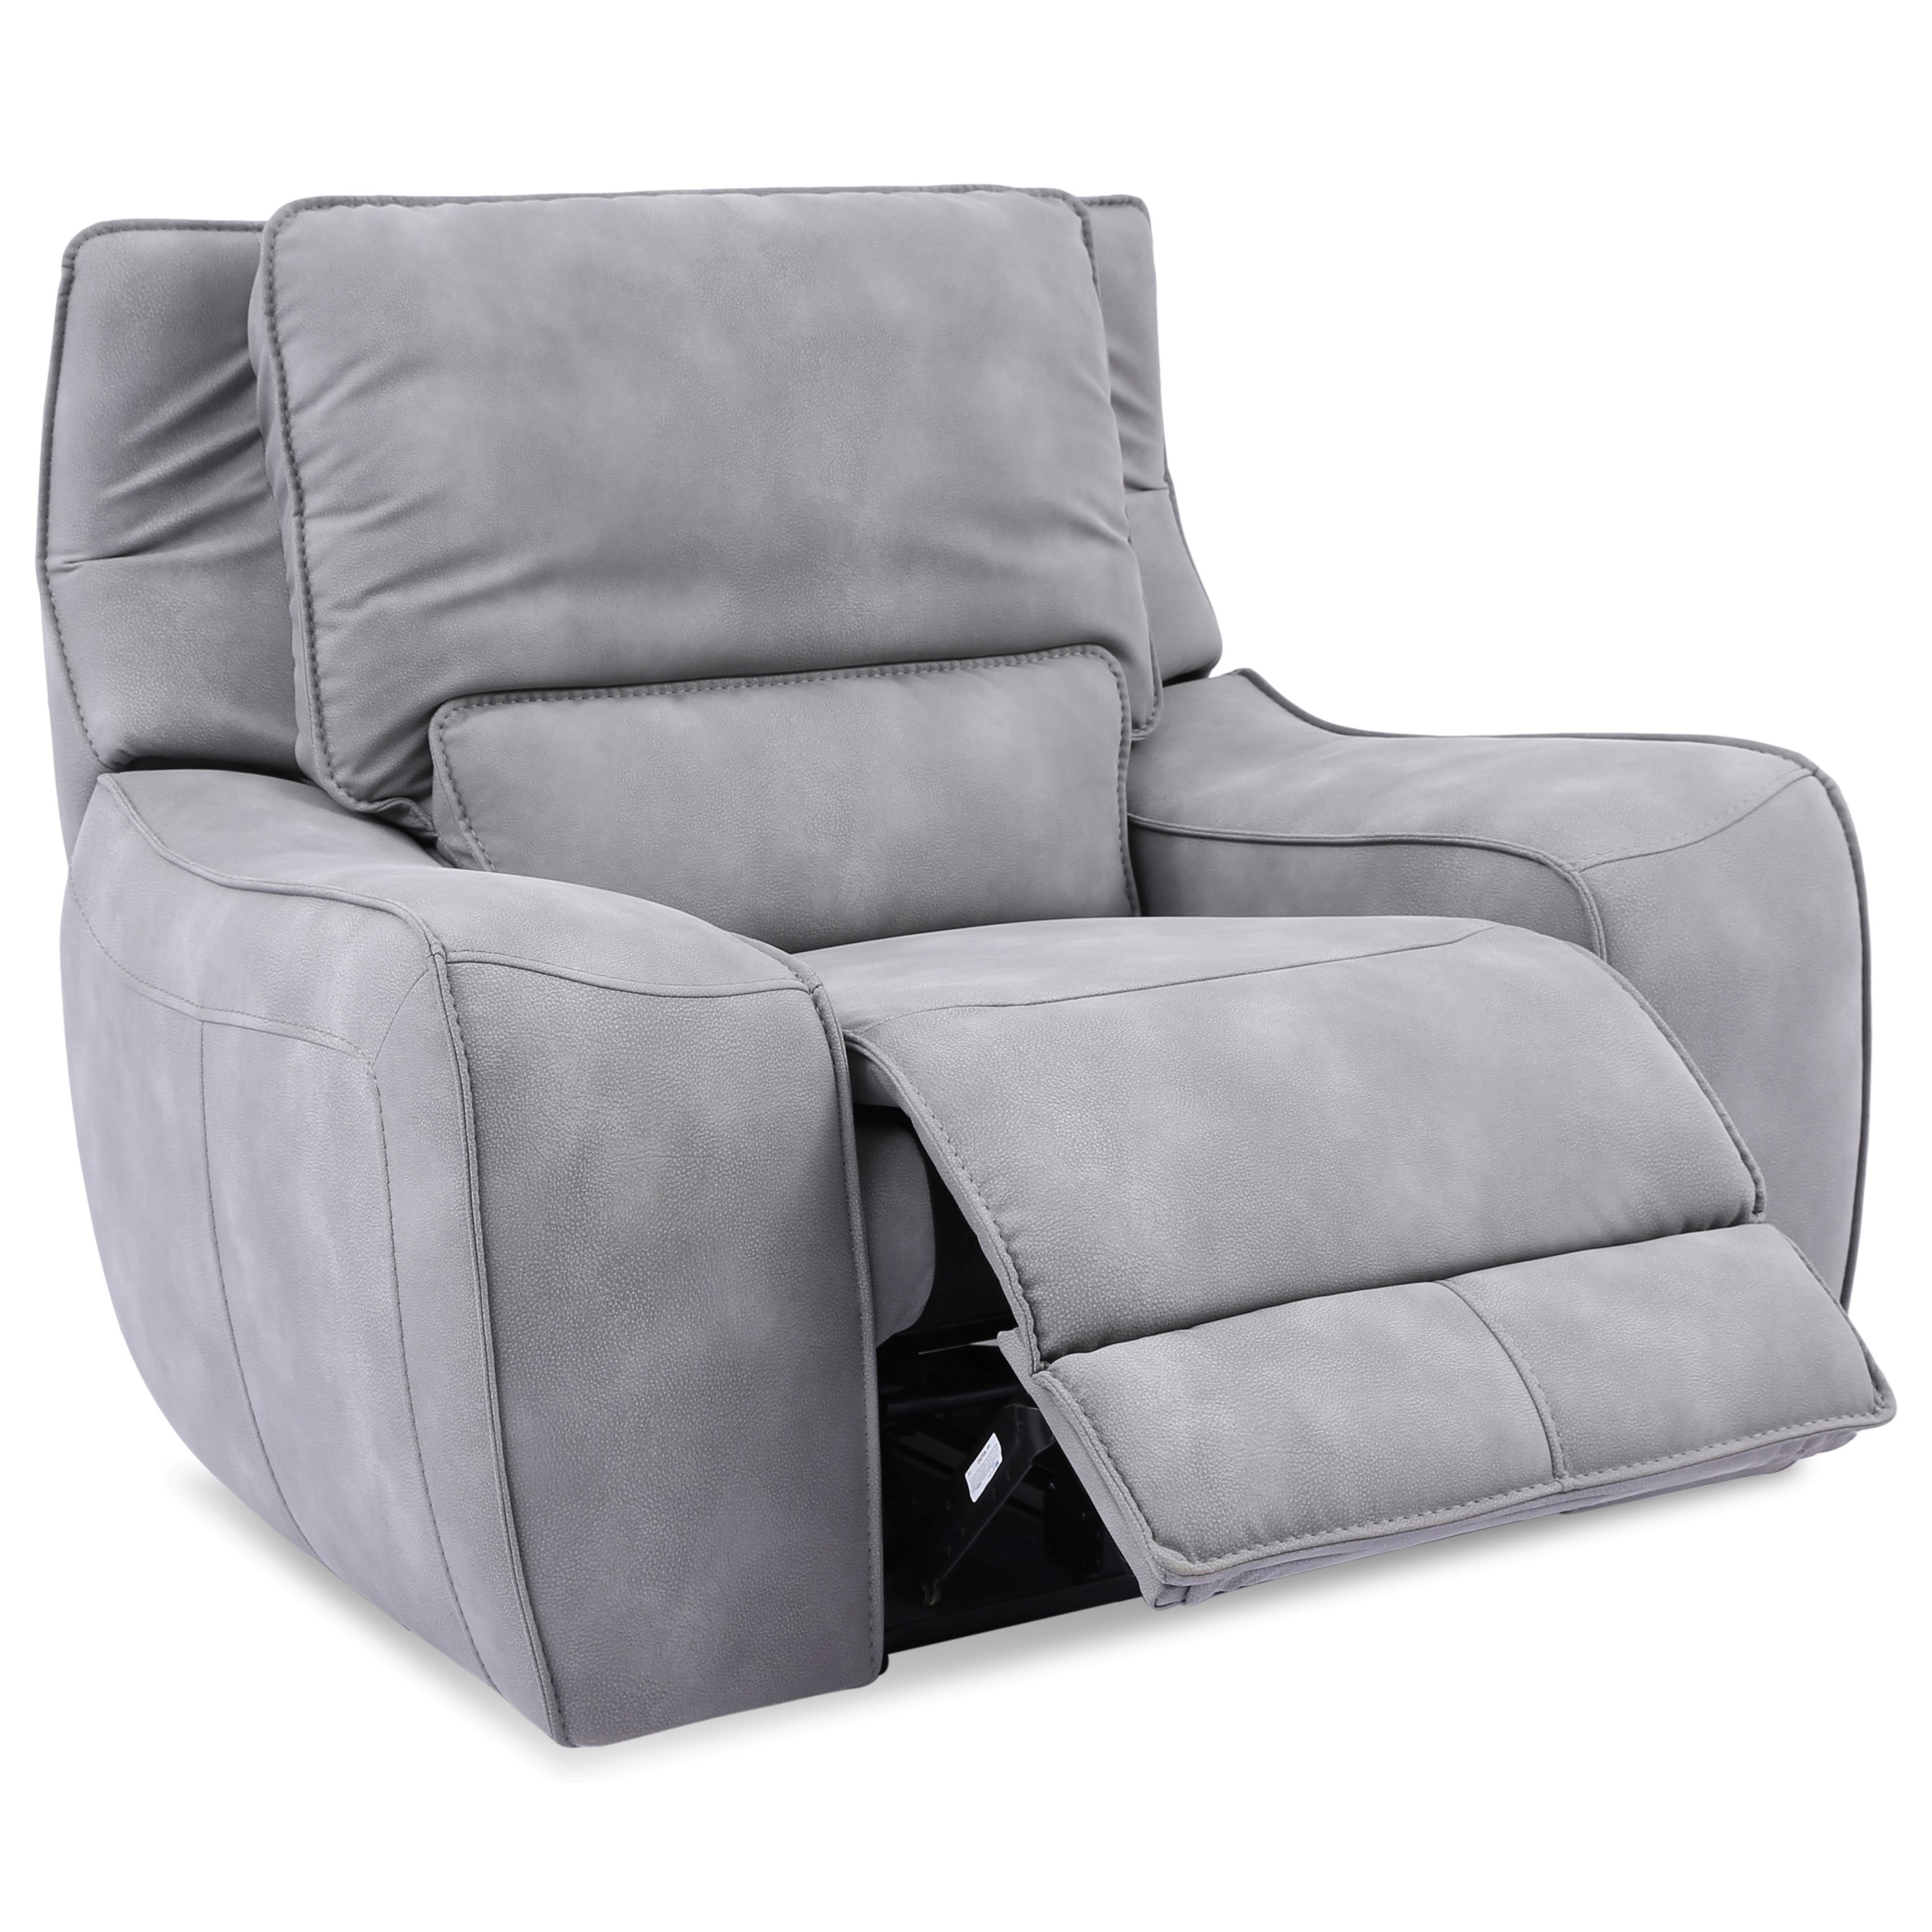 90027 Power Recliner by MW Classics at Miller Waldrop Furniture and Decor